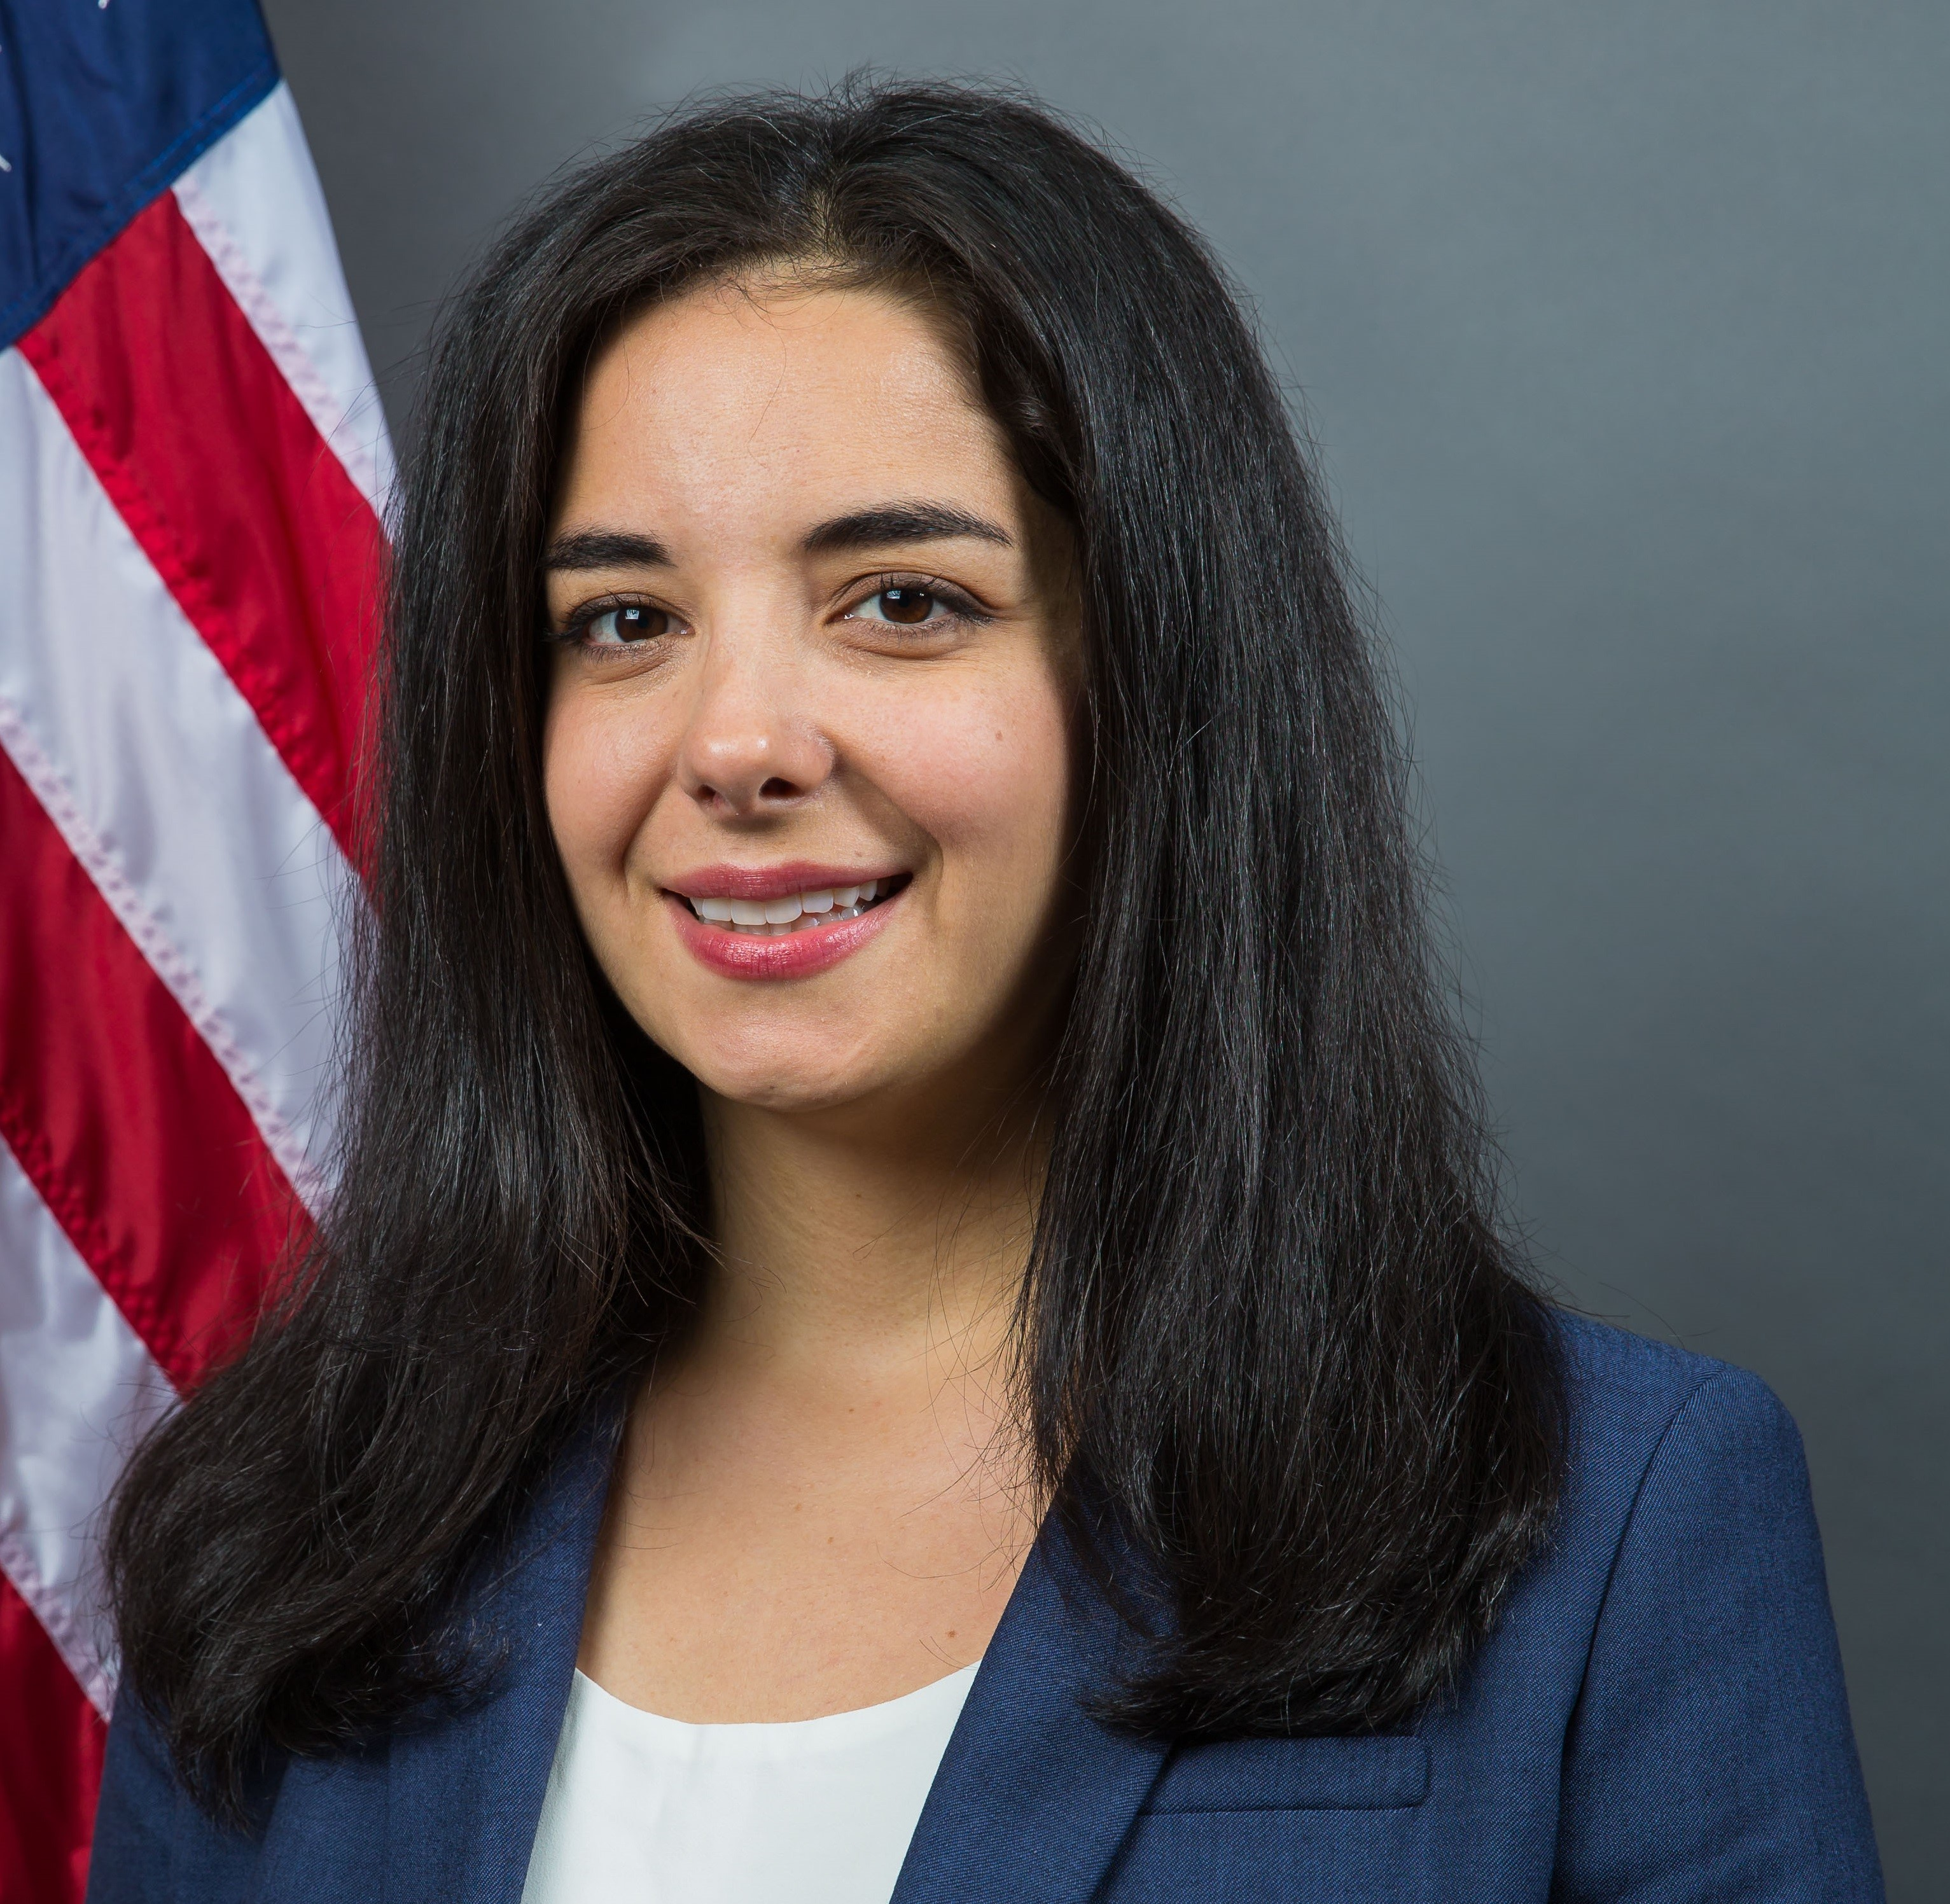 Erica Chiusano - United States Department of State